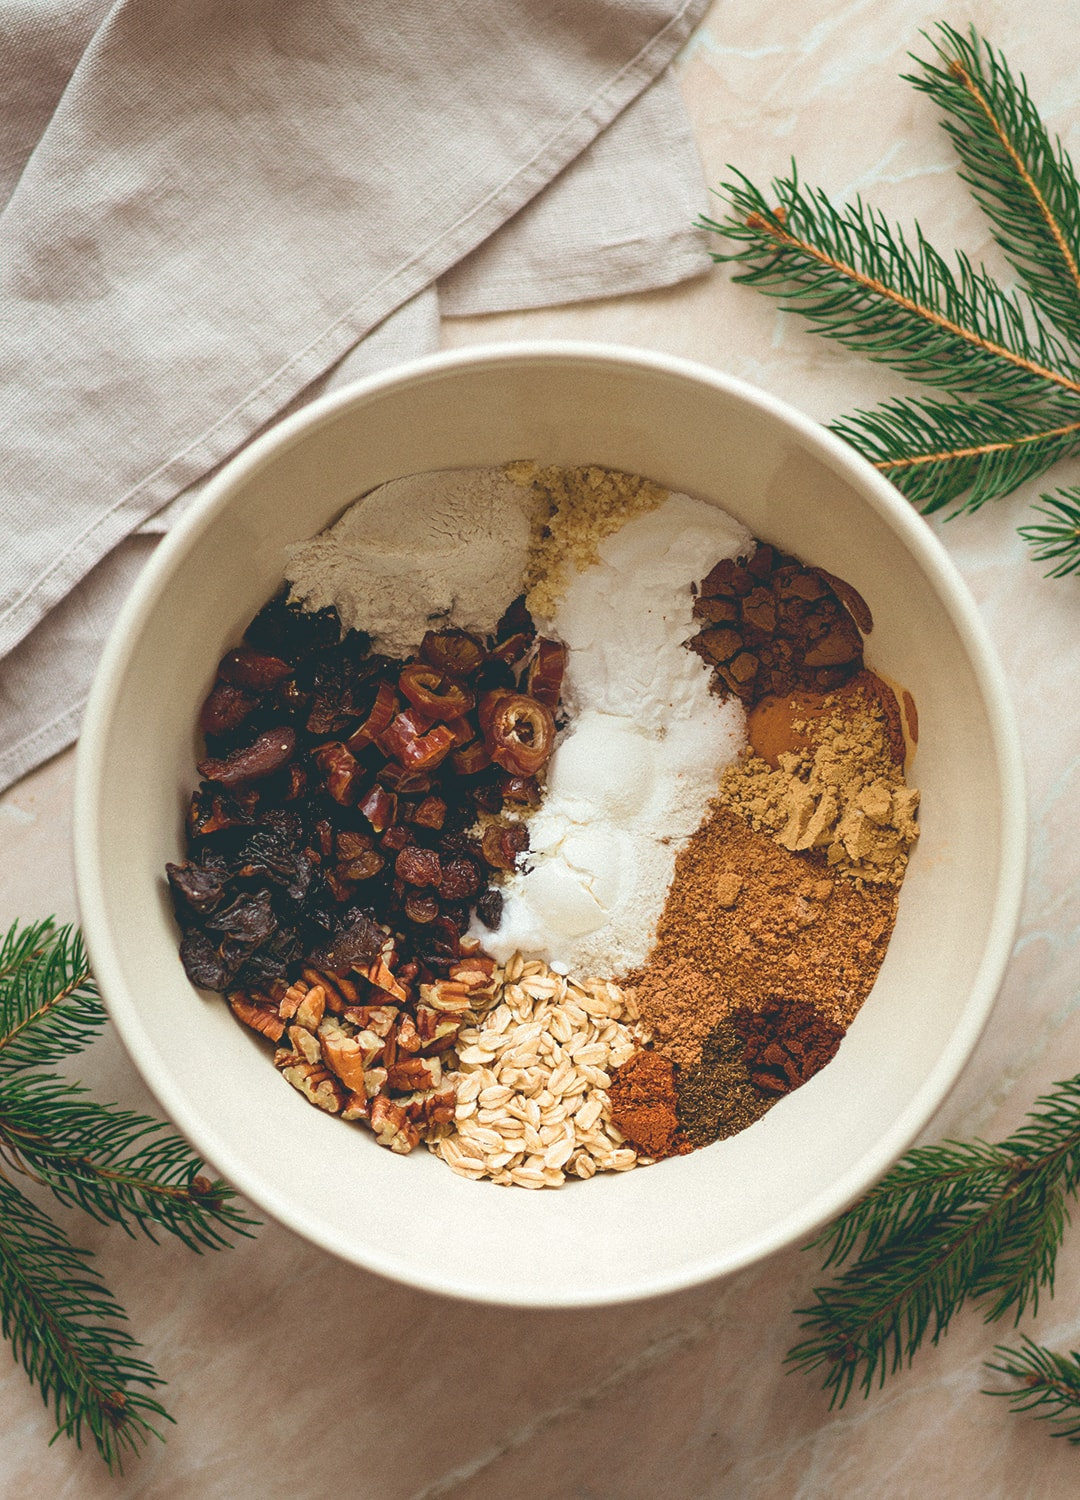 Christmas Spiced Bread with Nuts and Dried Fruit (vegan, gluten-free) - this bread is the perfect start to a crispy Christmas morning. You'll love this recipe! | thehealthfulideas.com